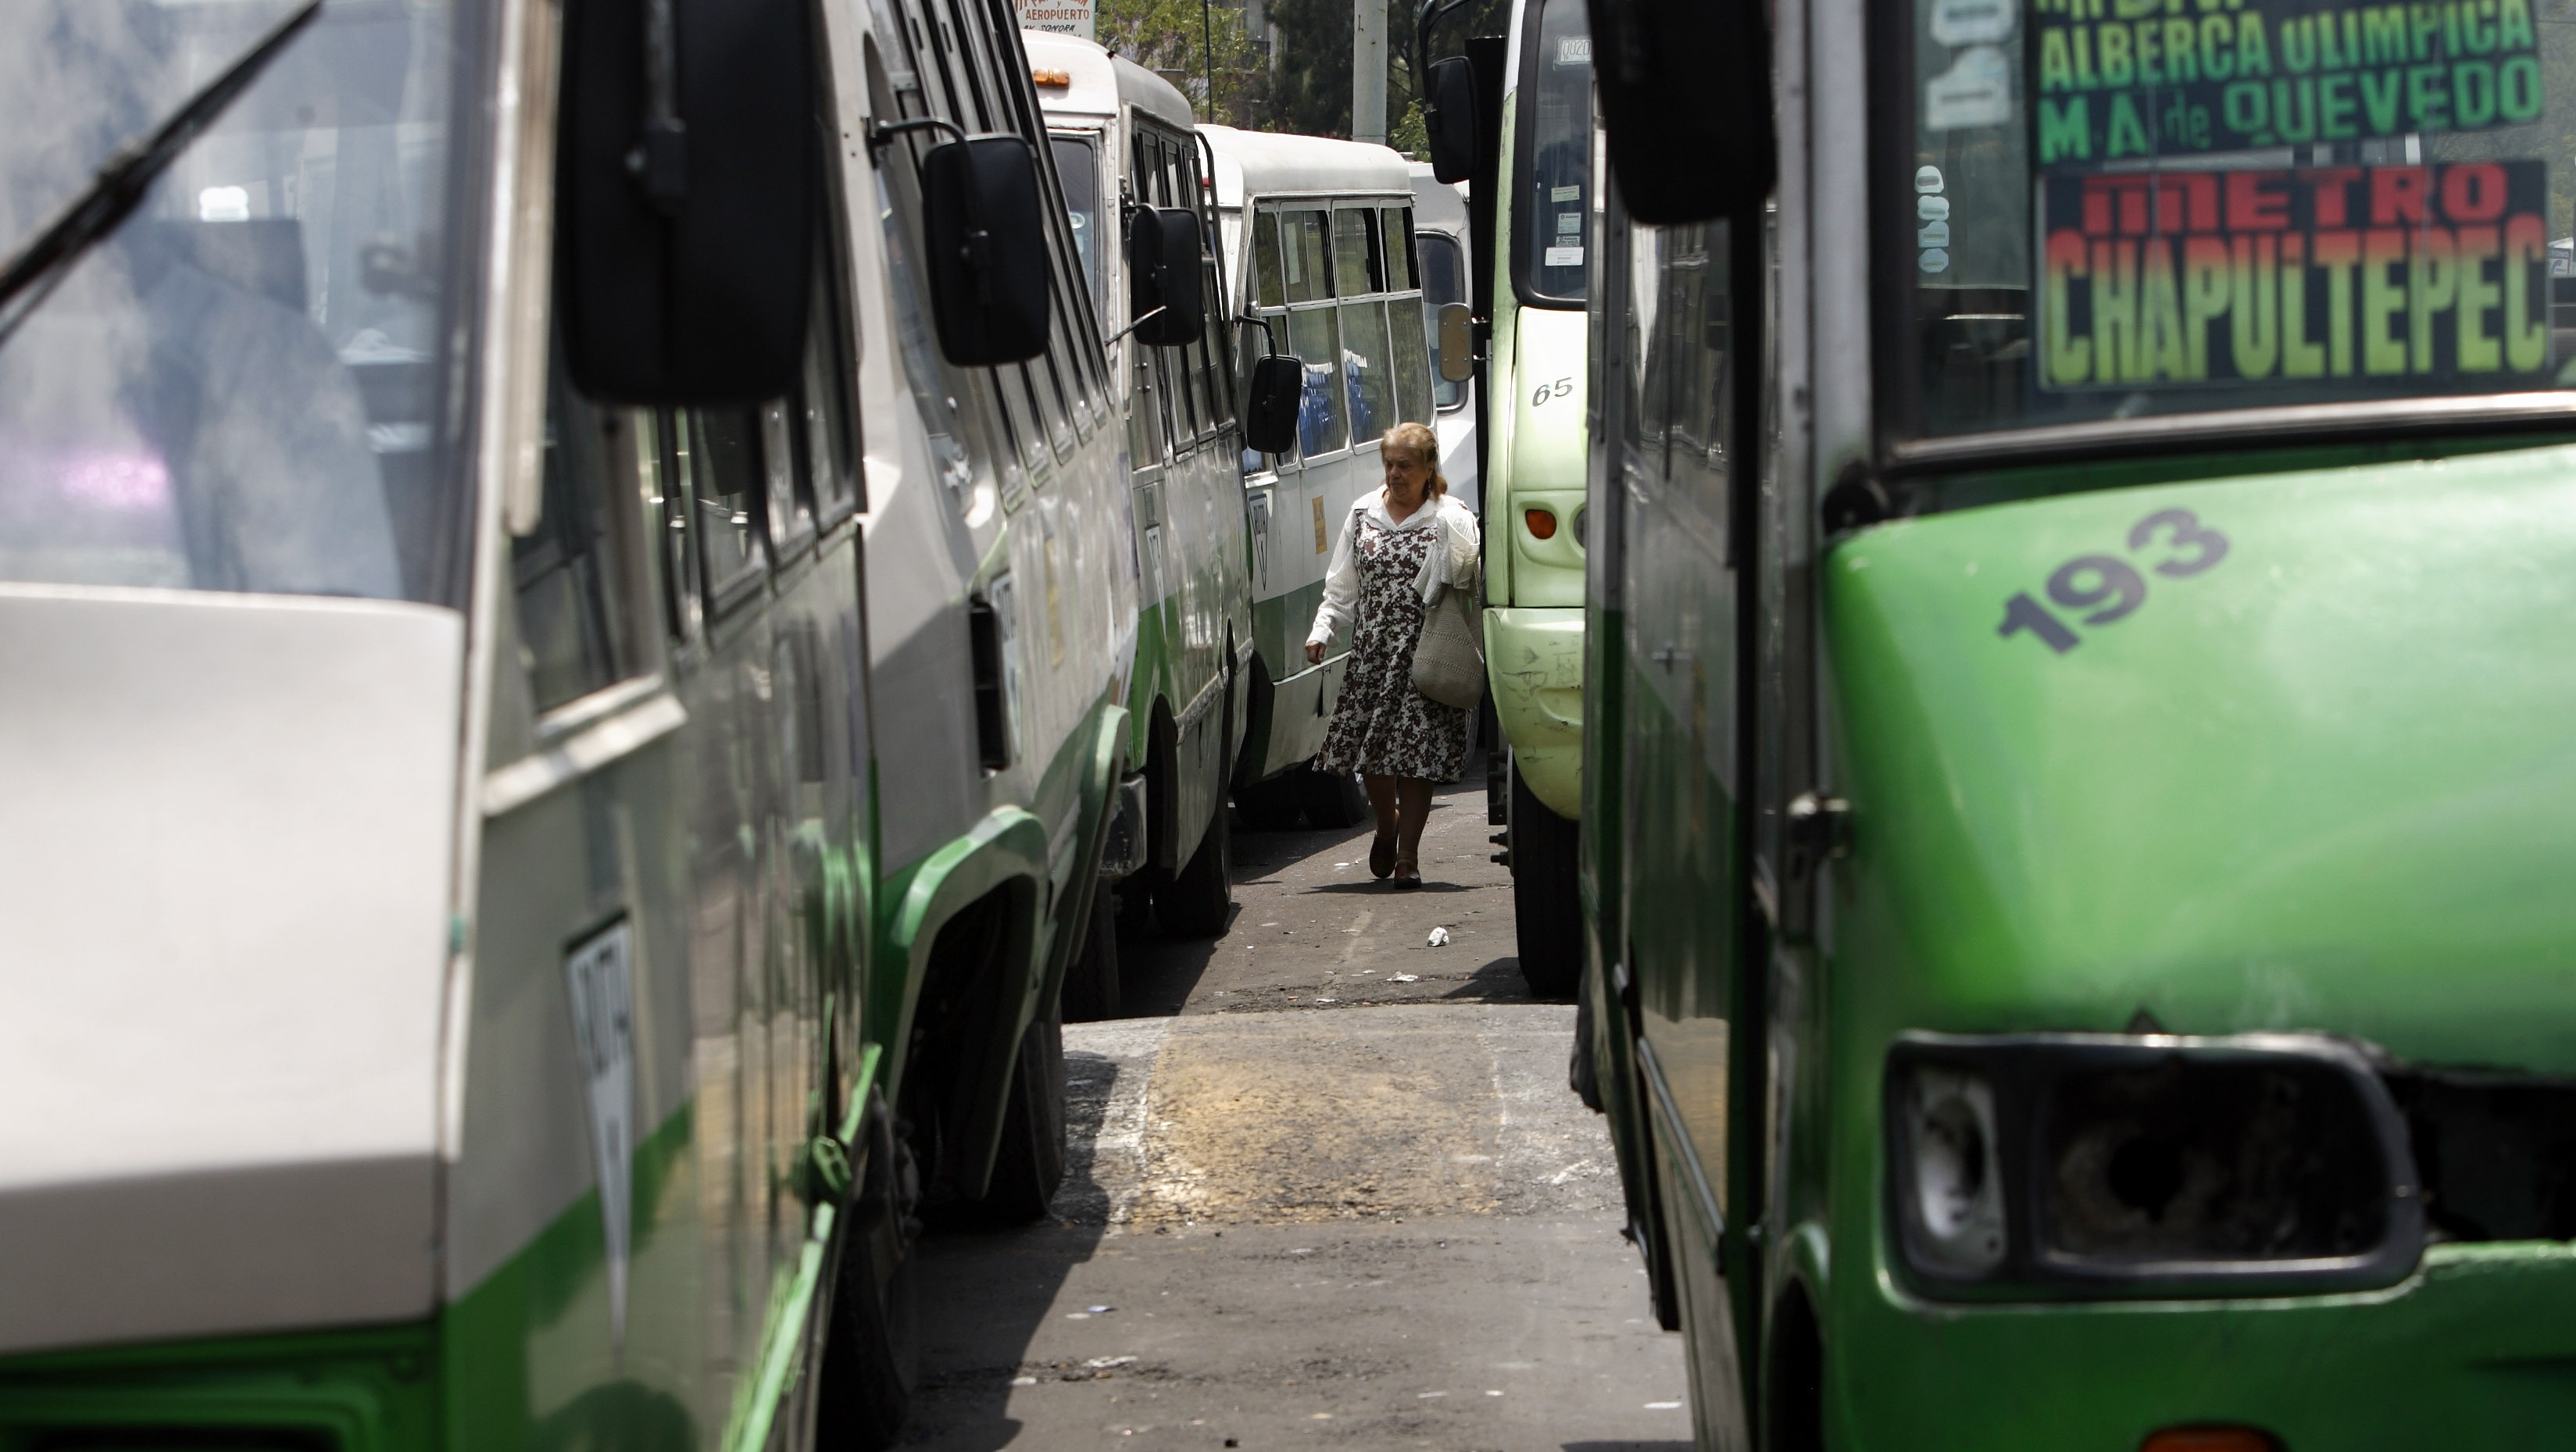 Mexico City is attempting to map its more than 1000 unwieldy bus